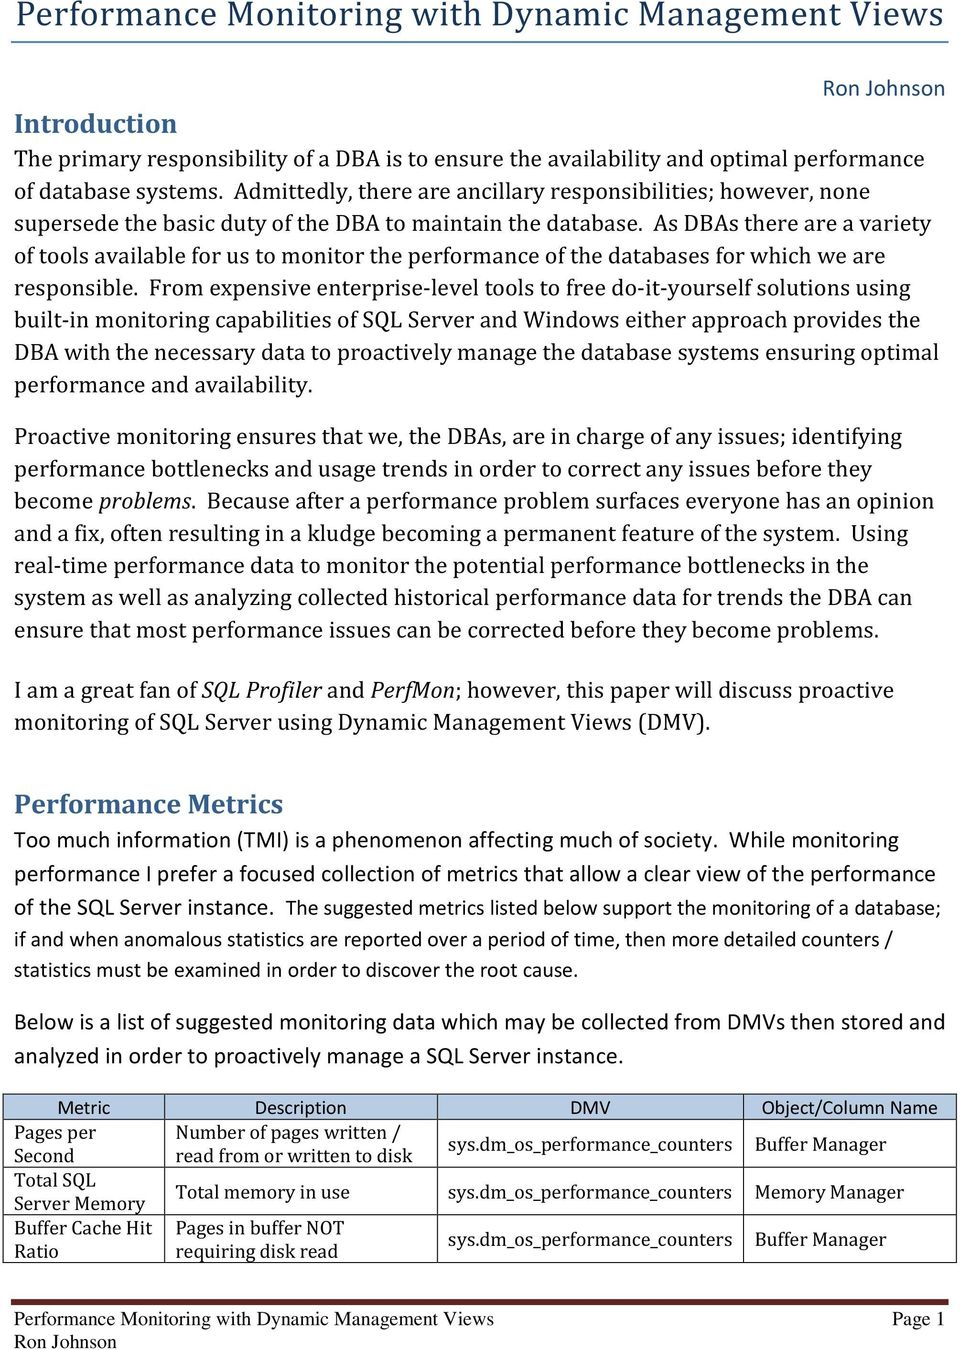 Performance Monitoring with Dynamic Management Views - PDF